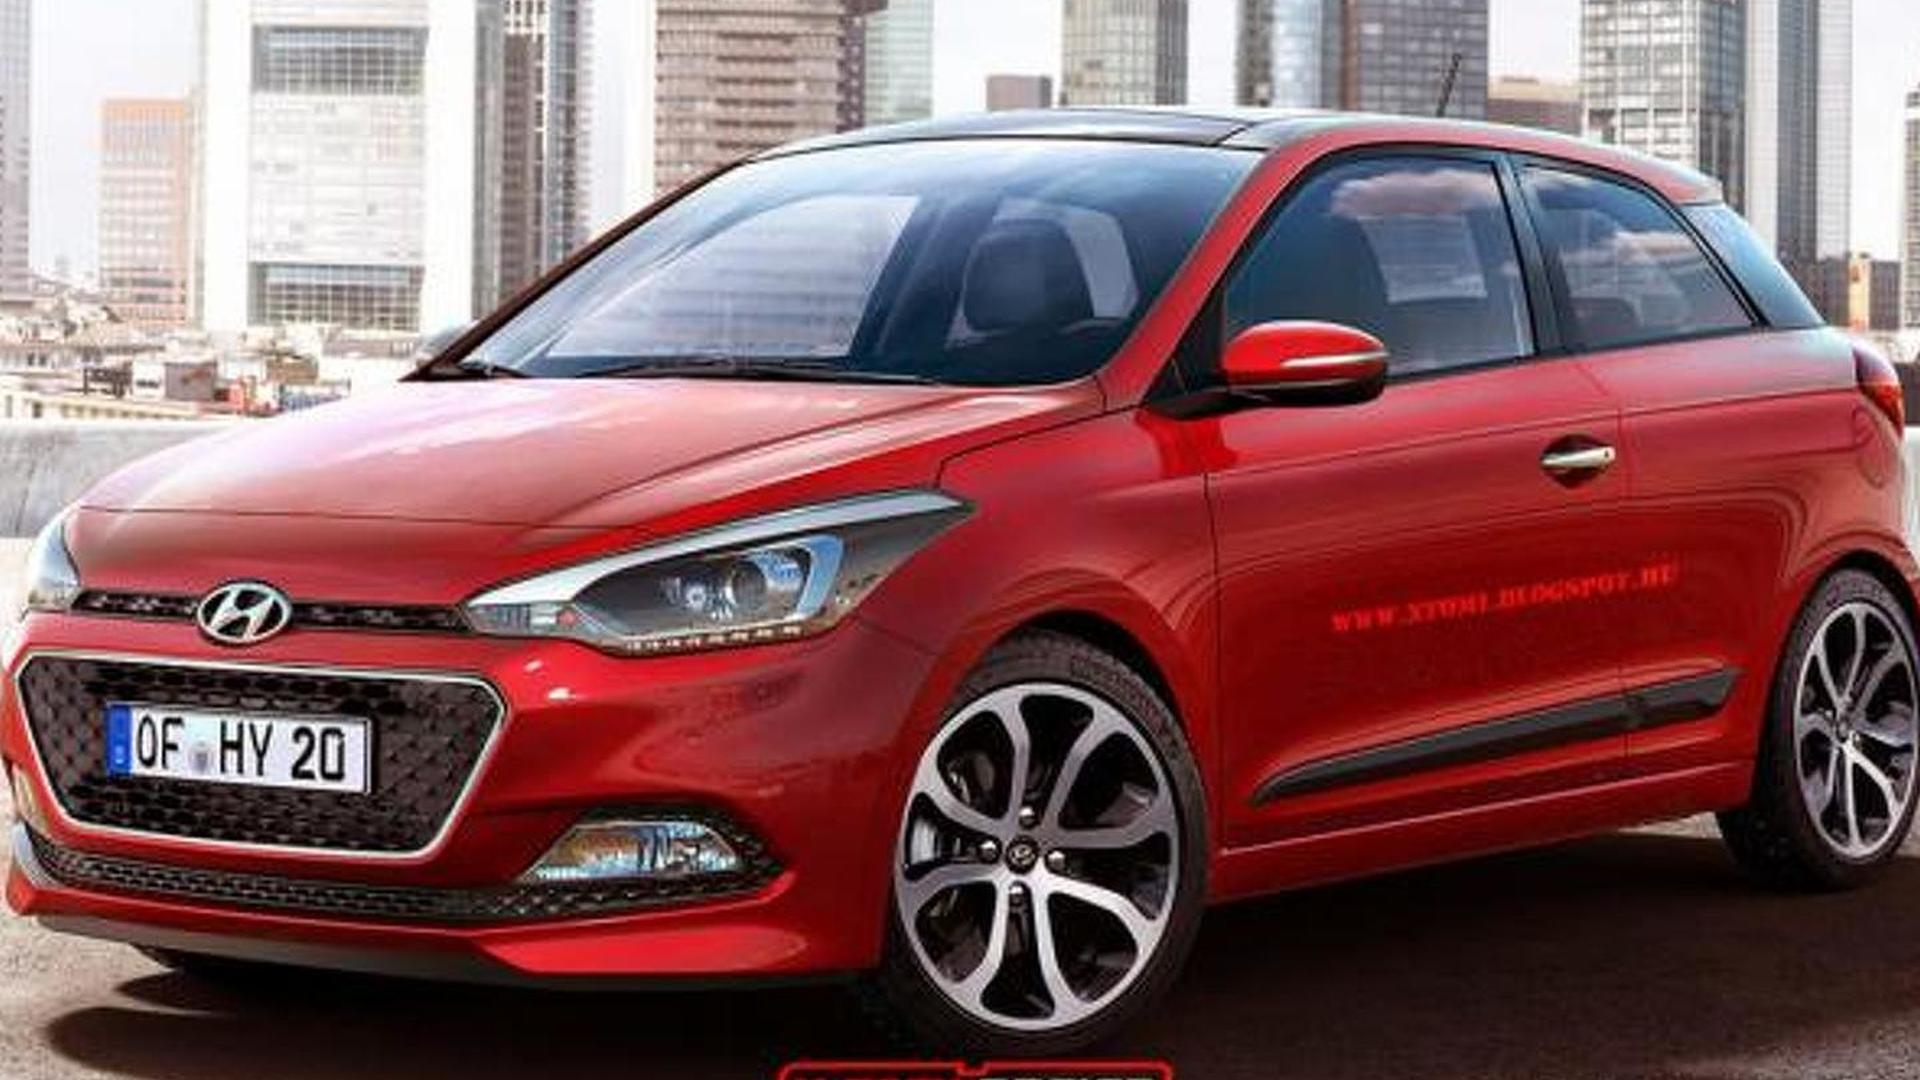 & All-new Hyundai i20 rendered without rear doors